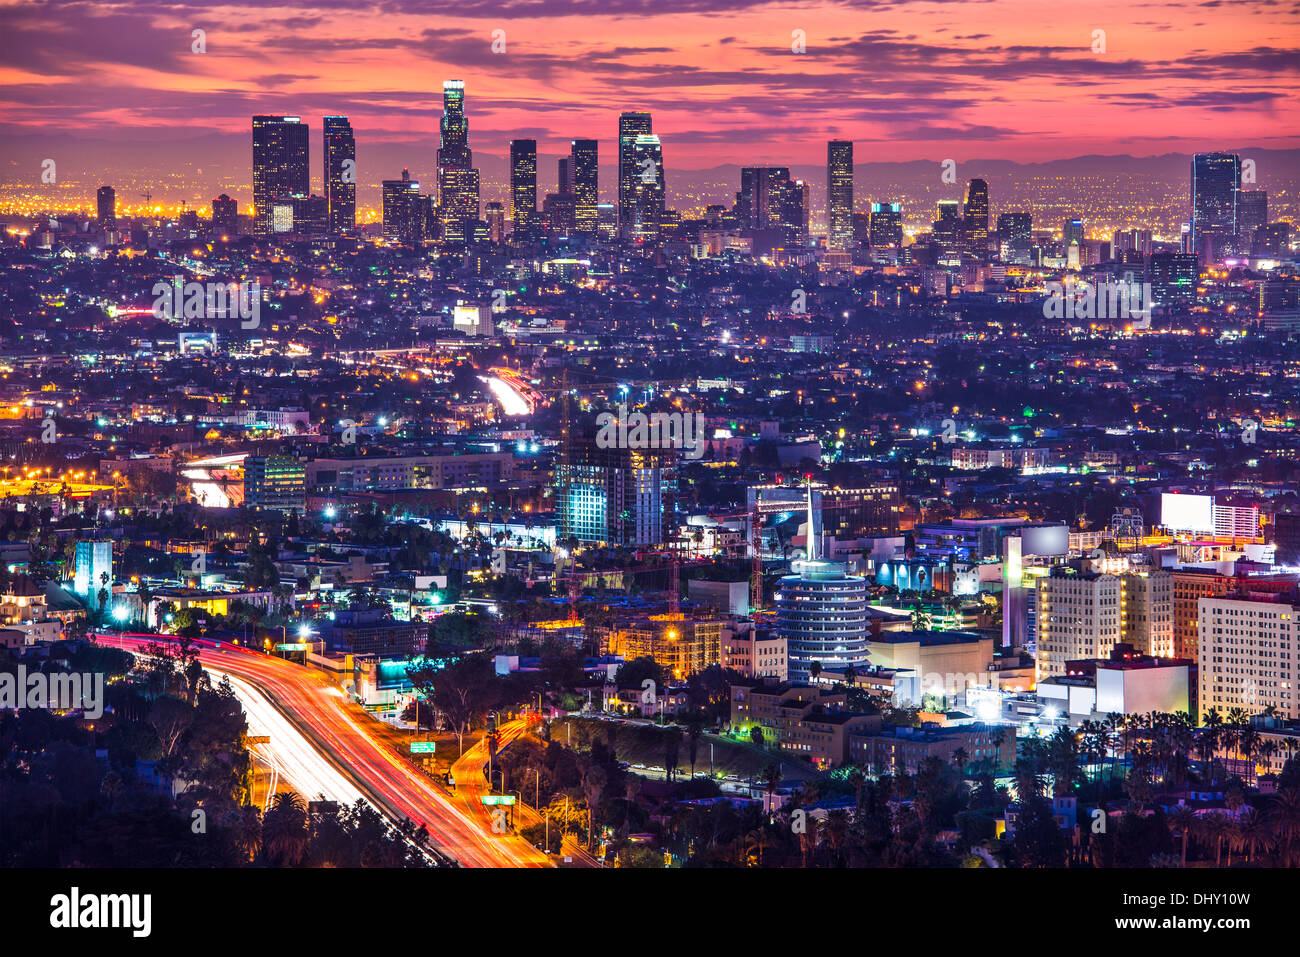 Downtown Los Angeles, California, USA skyline at dawn. - Stock Image